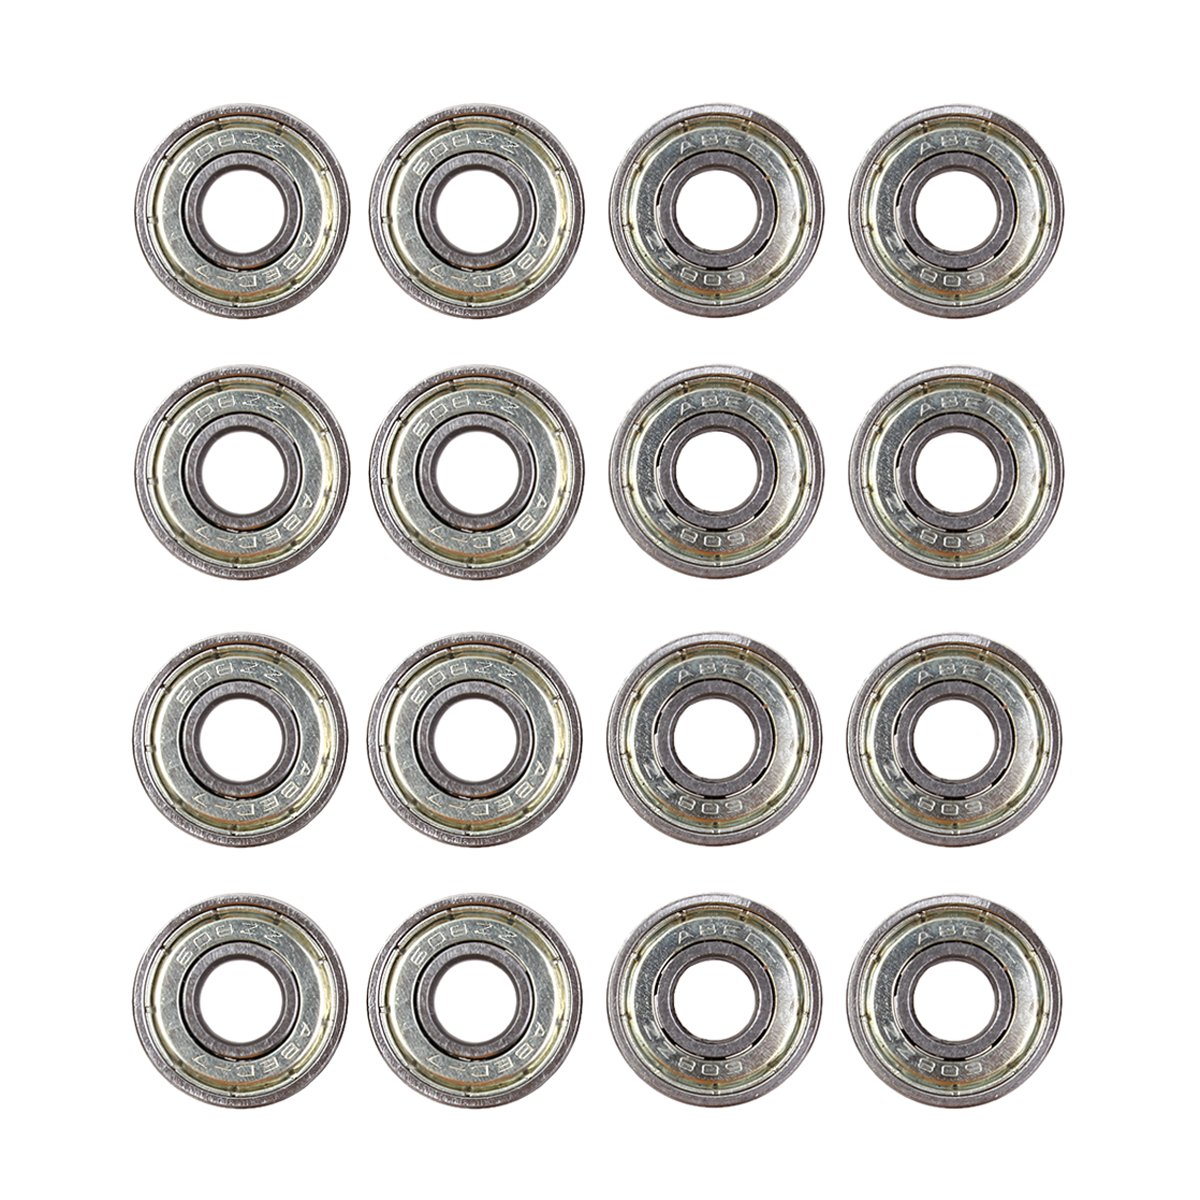 Natuworld 8/16/24pcs Both side Shielded 608 ZZ ABEC-7 Carbon Steel Bearings for Skateboards,Inline Skate, Scooter, Rollerblade